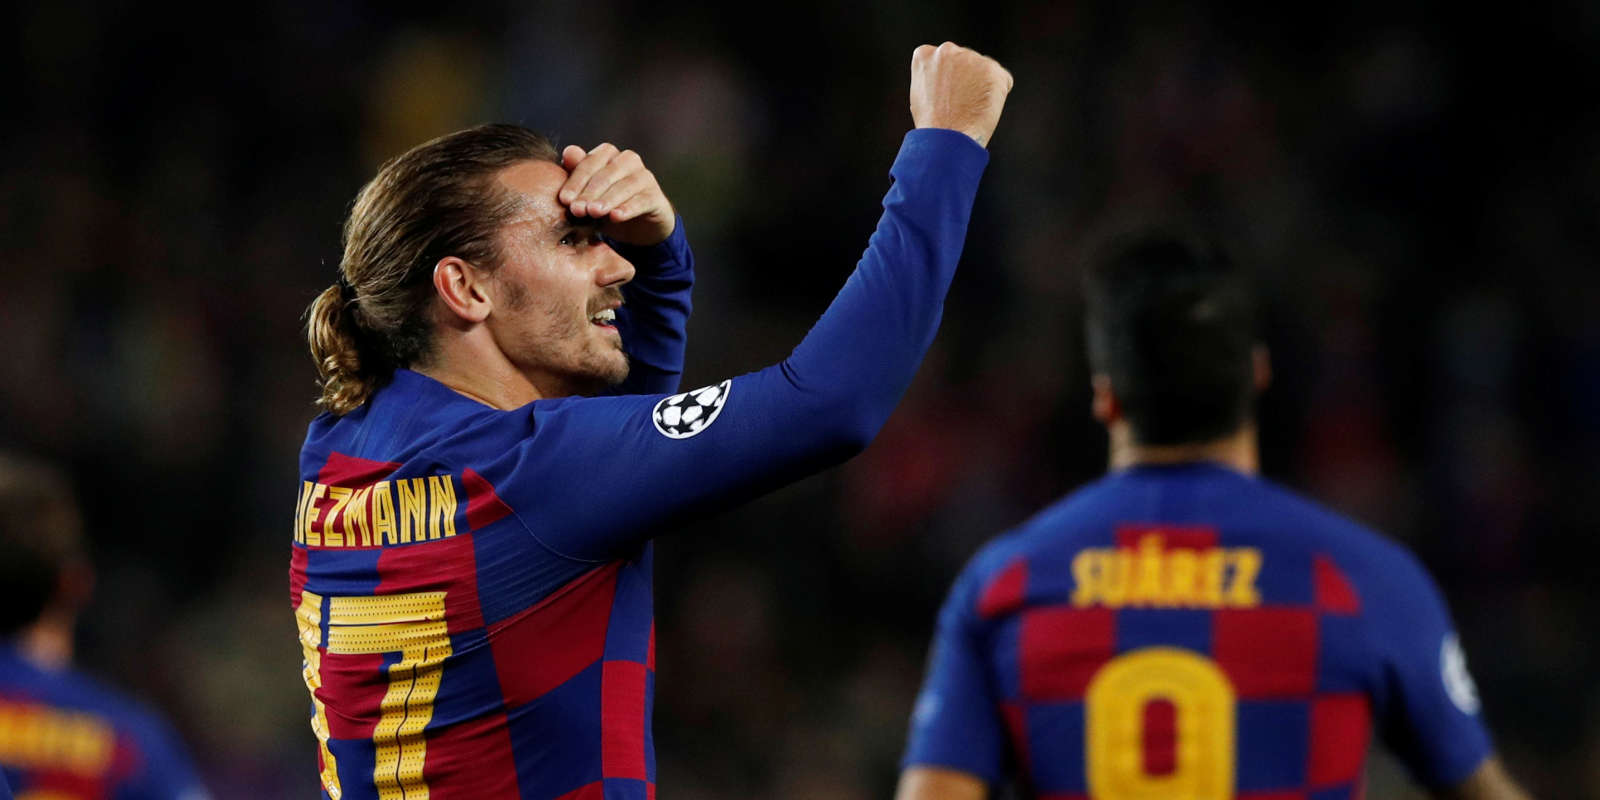 Soccer Football - Champions League - Group F - FC Barcelona v Borussia Dortmund - Camp Nou, Barcelona, Spain - November 27, 2019 Barcelona's Antoine Griezmann celebrates scoring their third goal REUTERS/Albert Gea